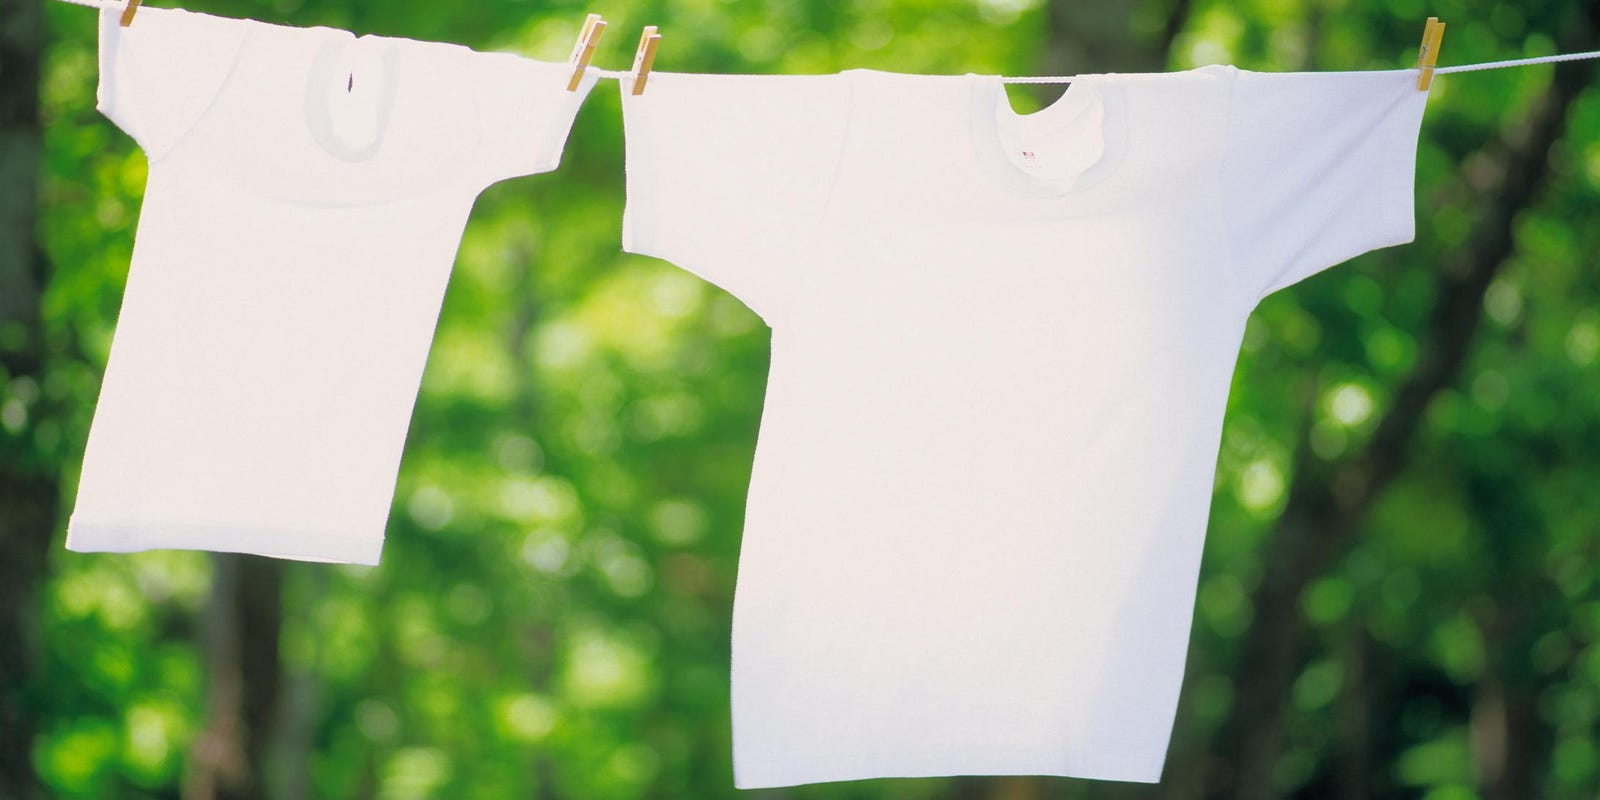 5 Tips To Keep White Clothing Looking Bright